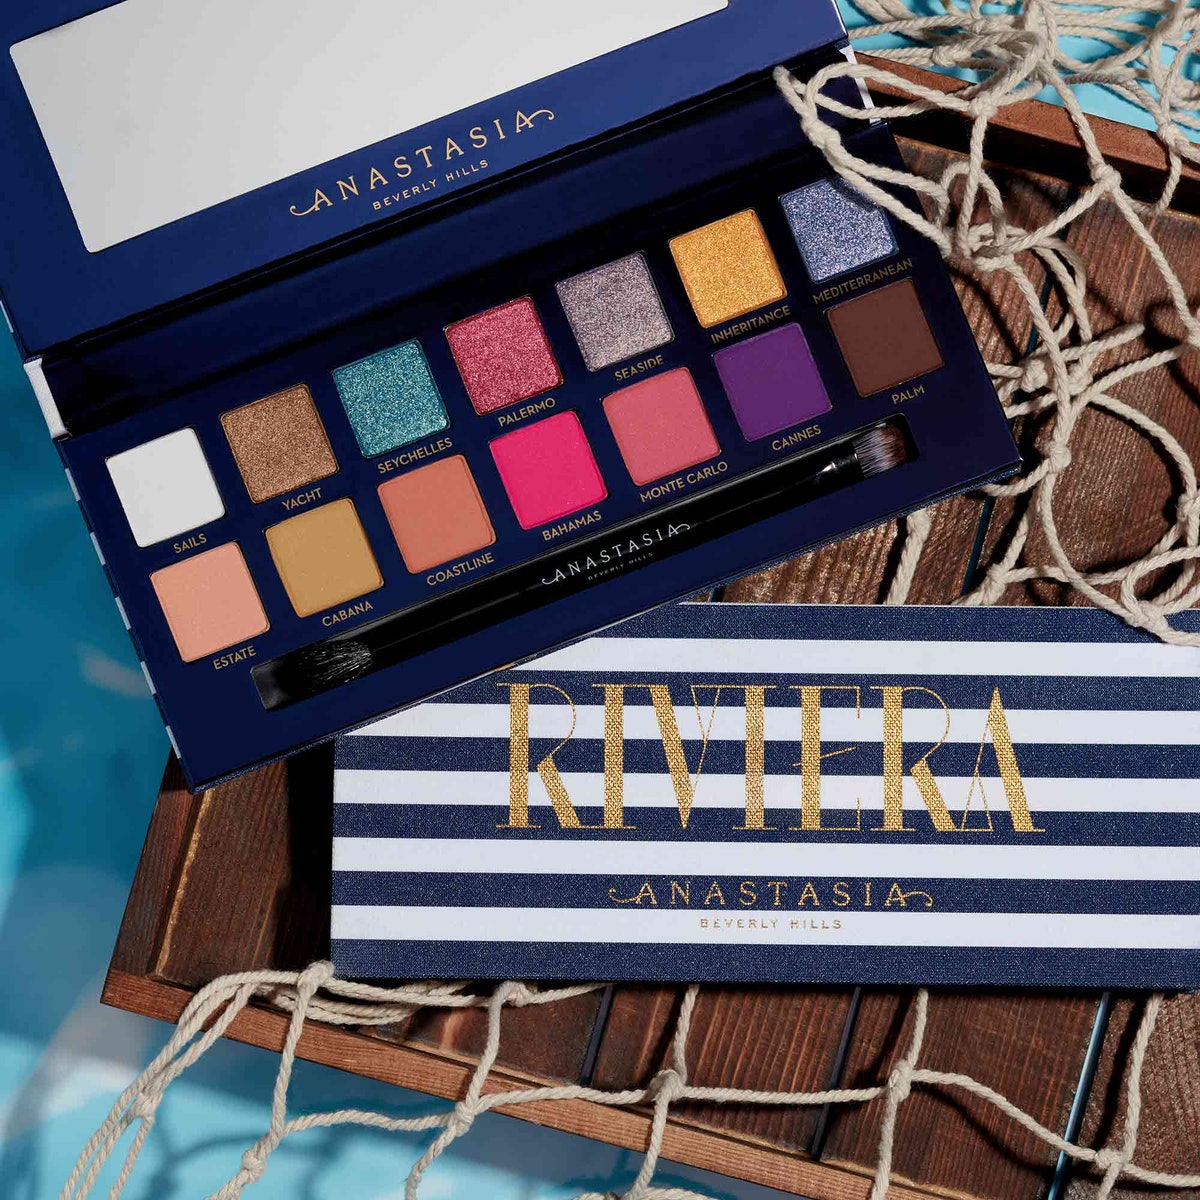 These New 2019 Eyeshadow Palettes Are SO Wearable – & Here's Proof